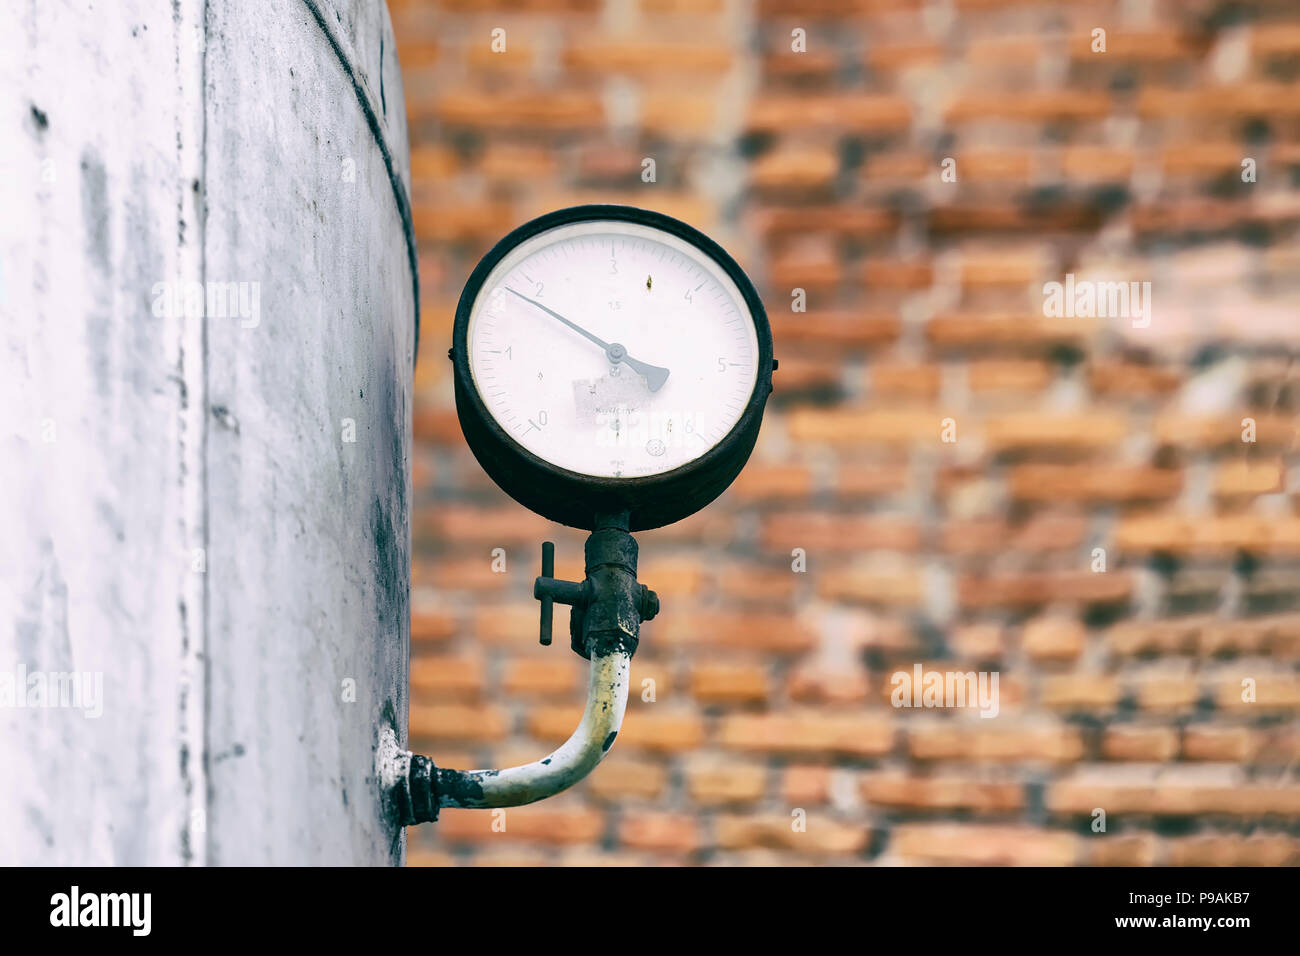 Old pressure gauge of the tank. Pressure sensor against a brick wall background - Stock Image